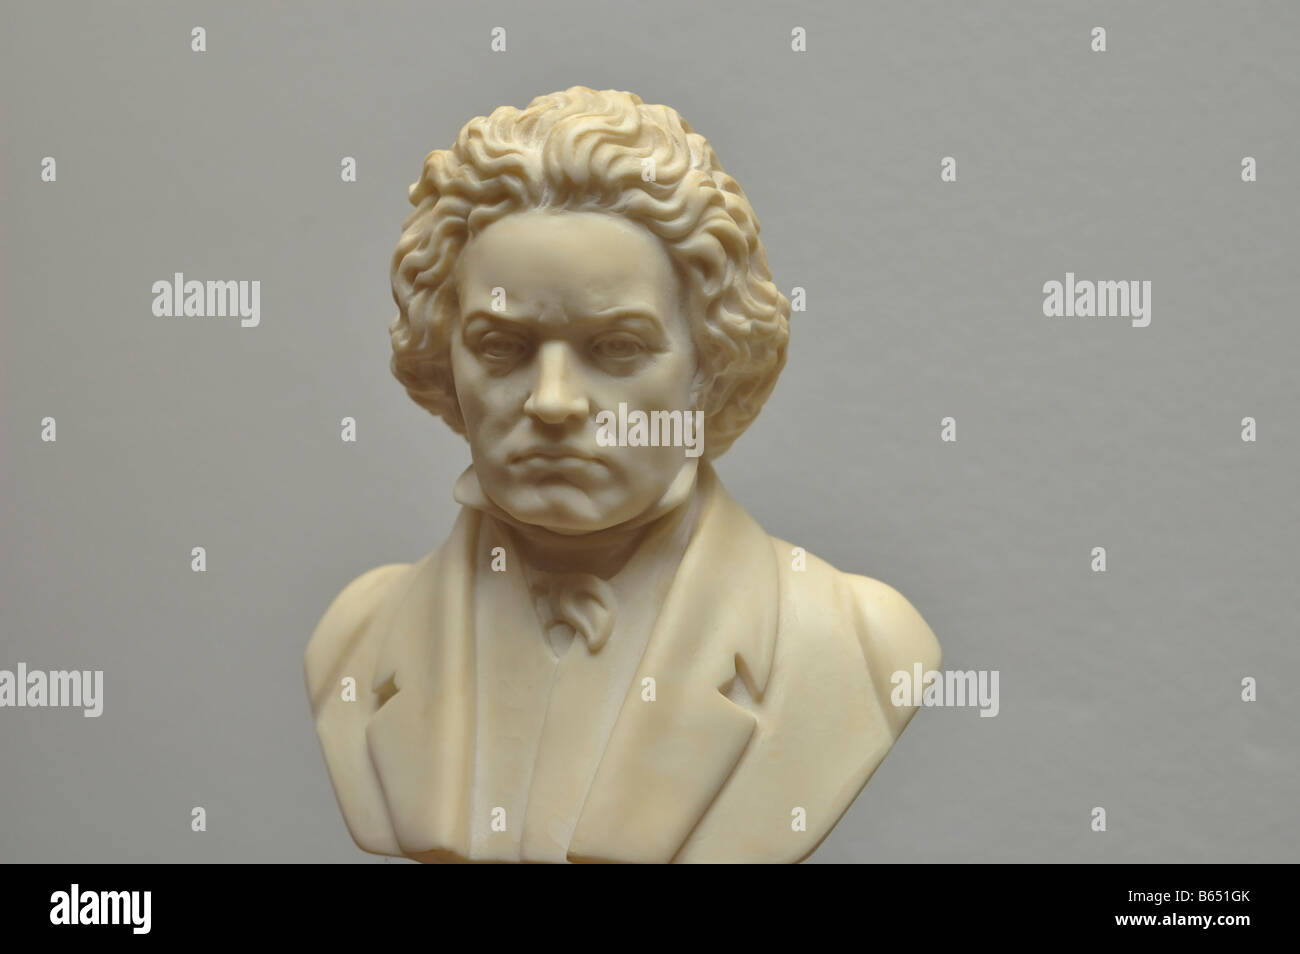 Reproduction of the bust of Ludwig van Beethoven - Stock Image